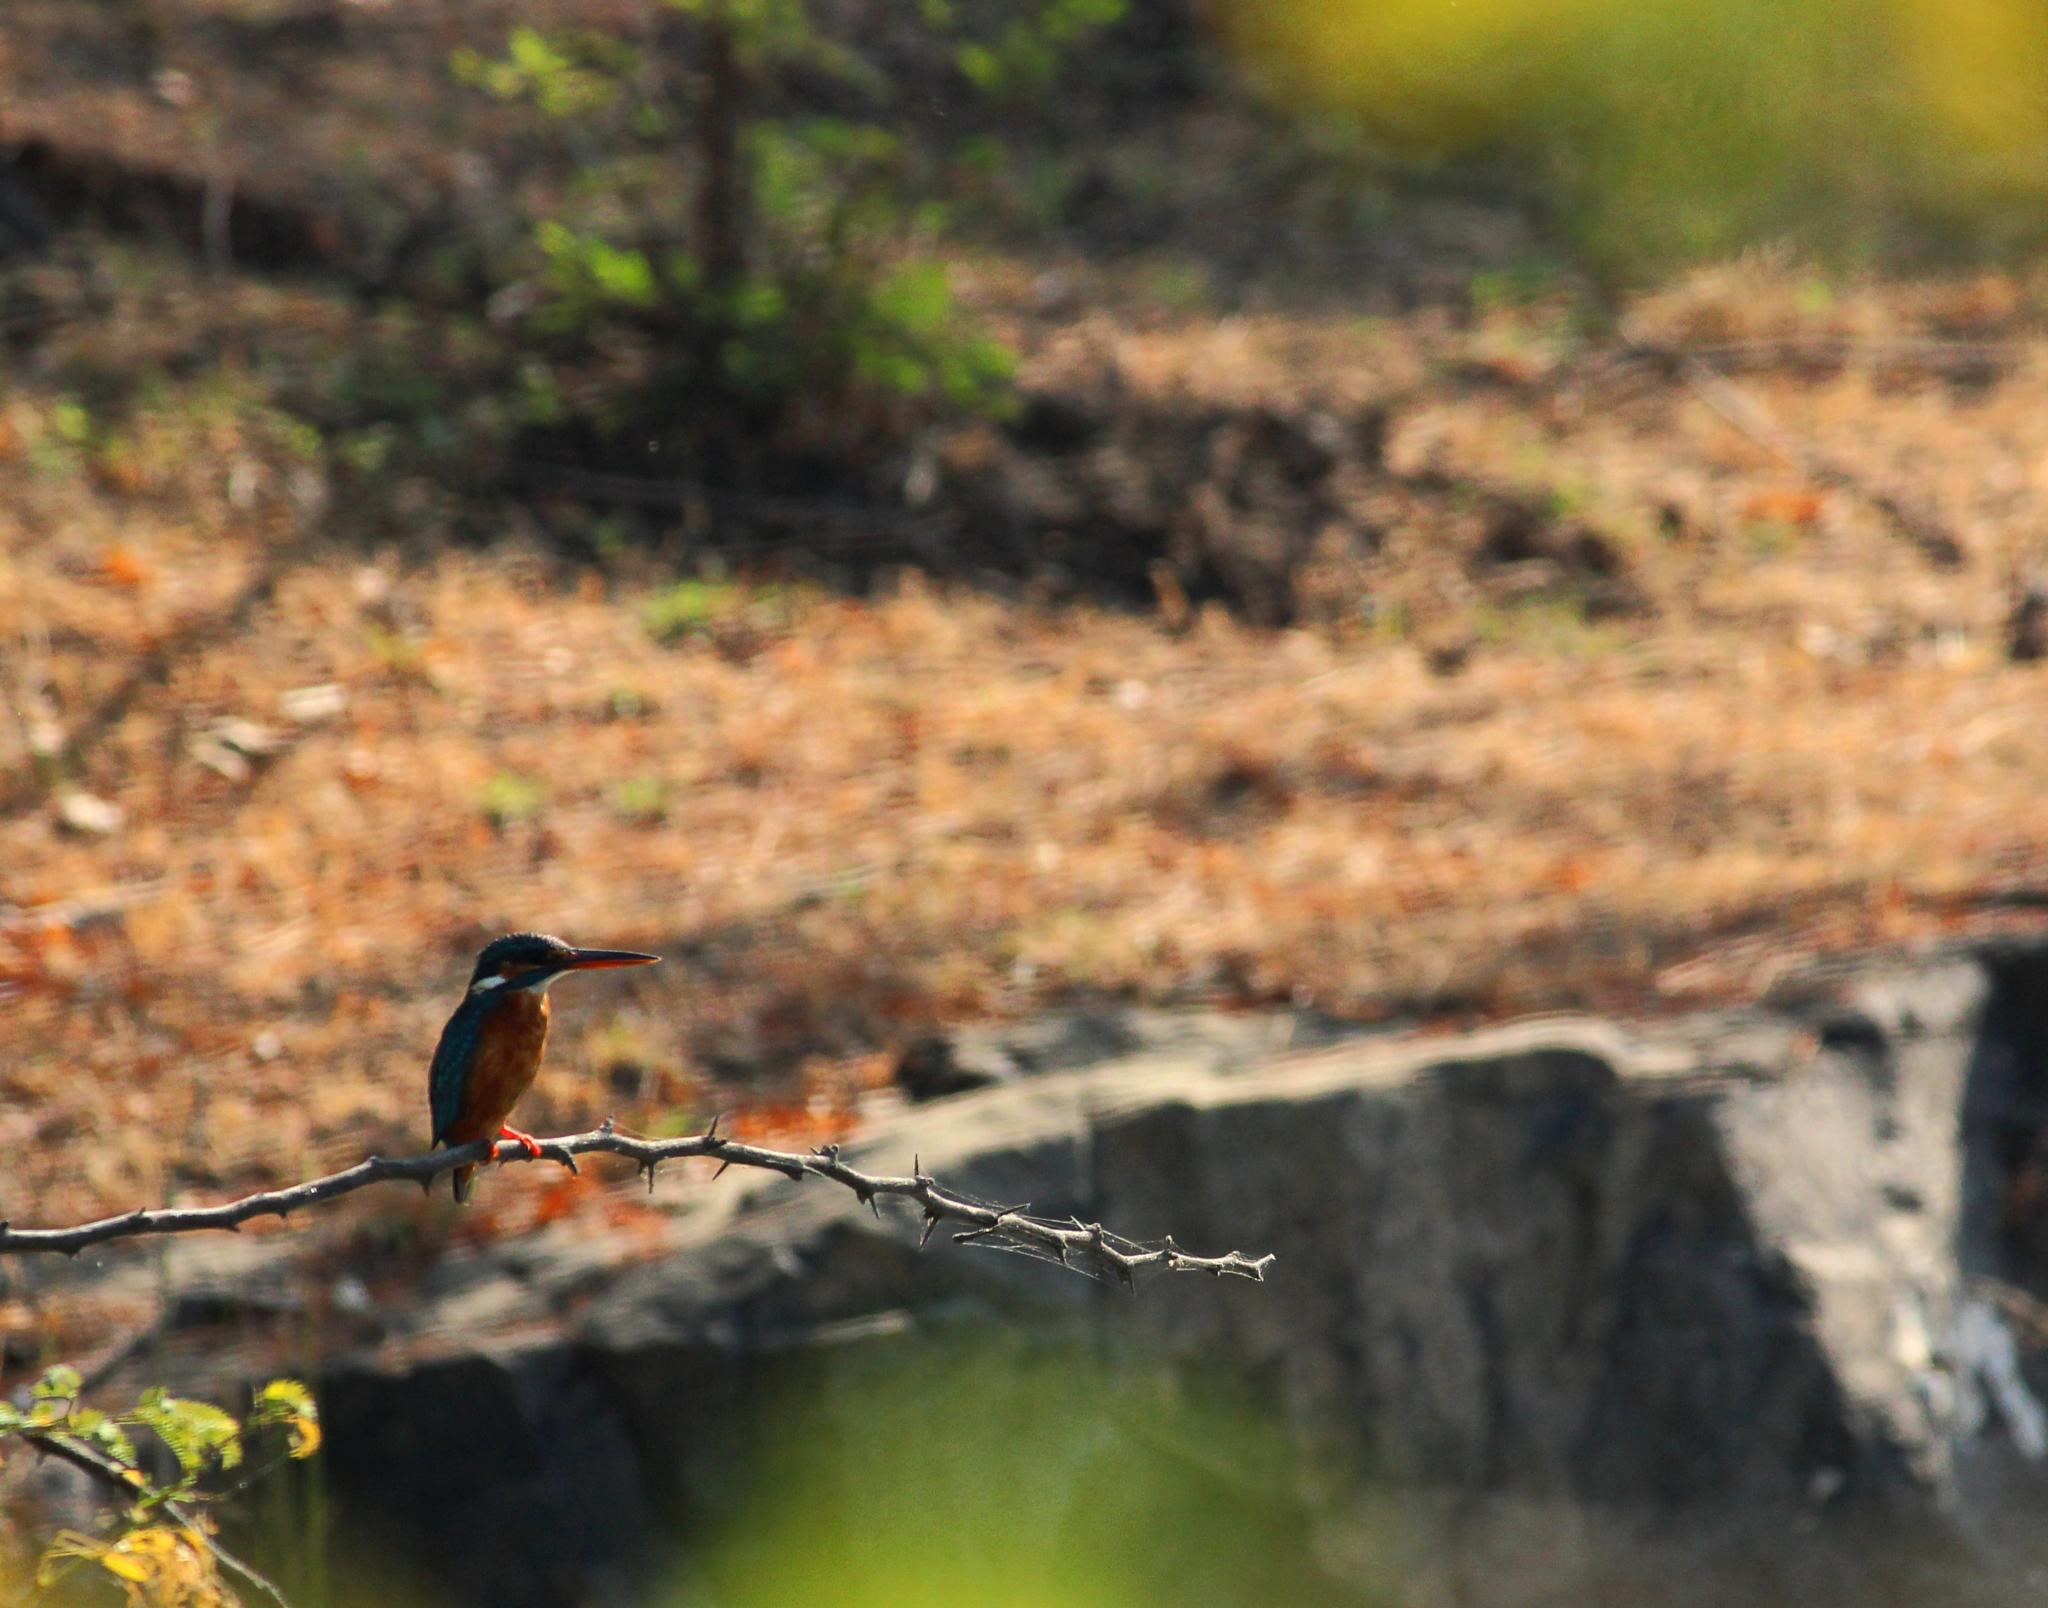 Common Kingfisher by Nirav Mehta